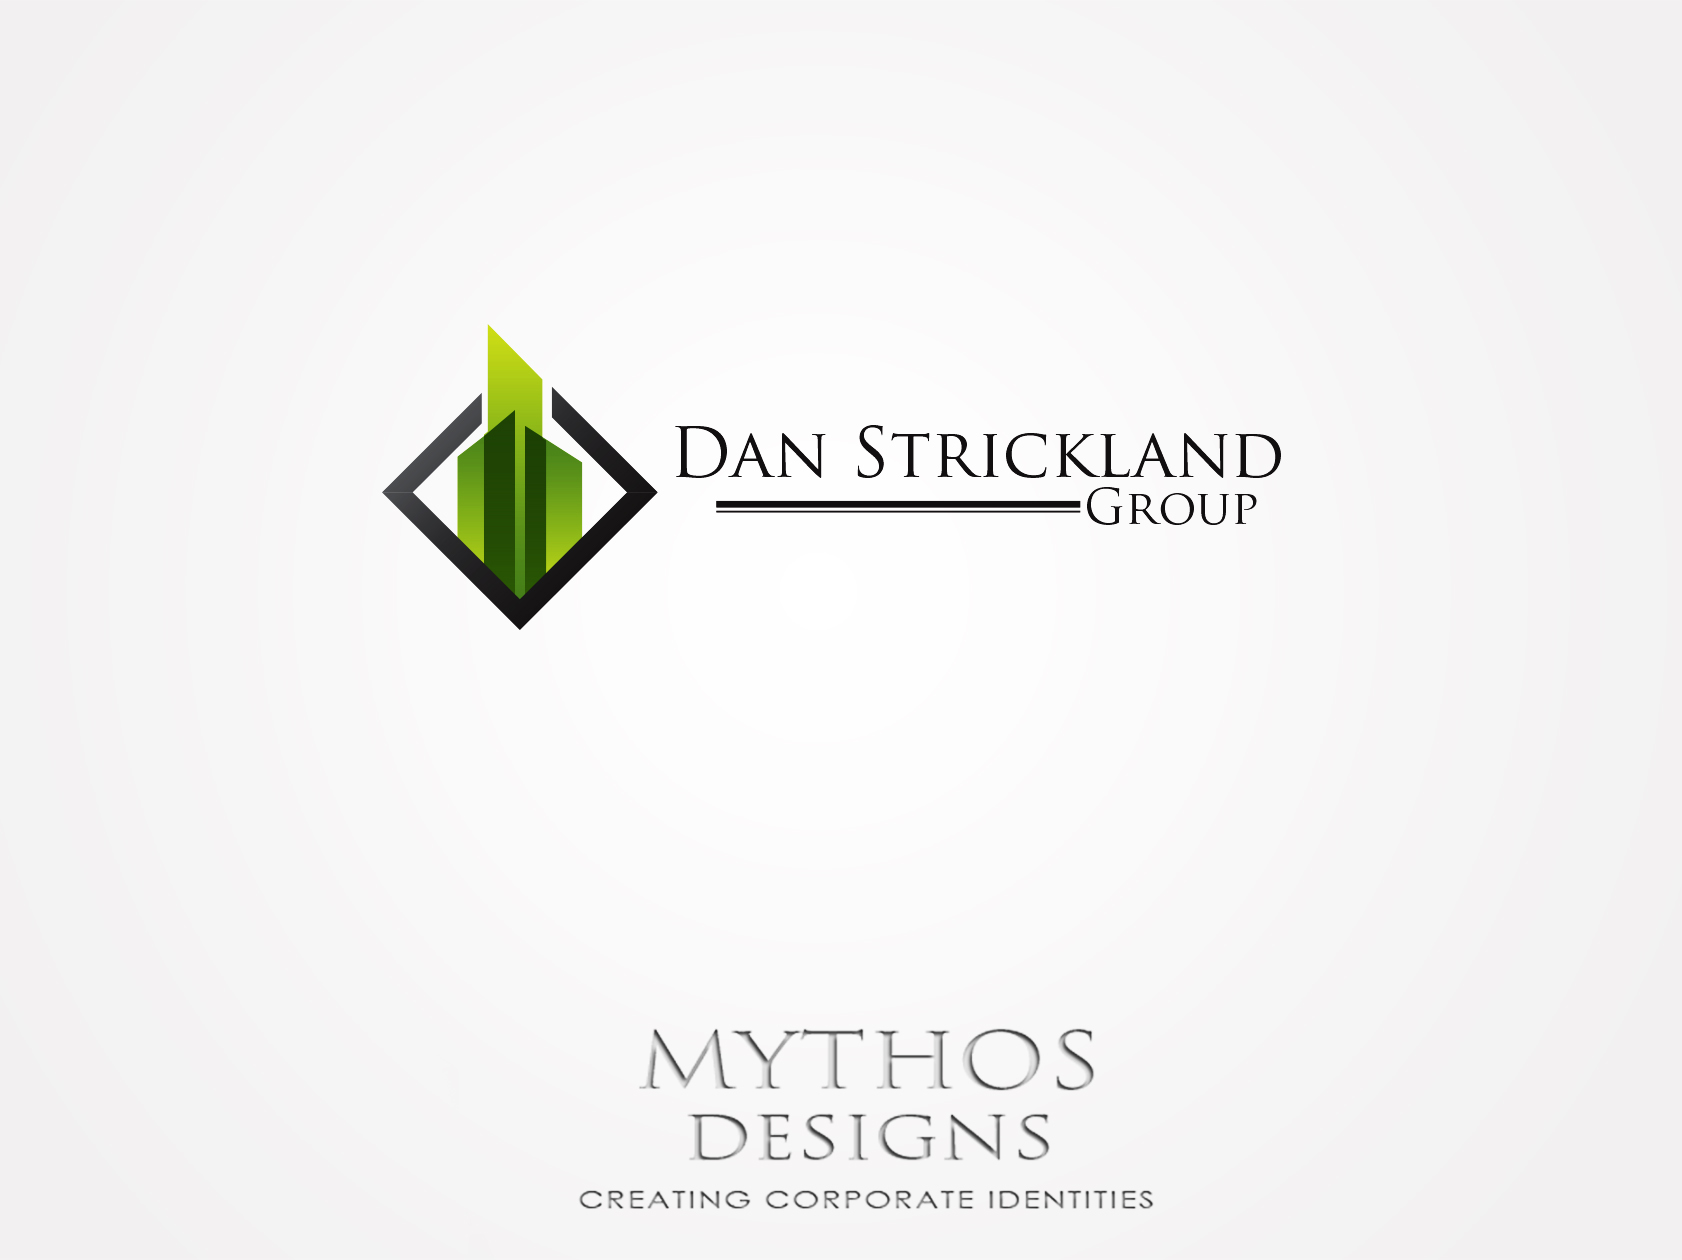 Logo Design by Mythos Designs - Entry No. 8 in the Logo Design Contest Creative Logo Design for The Dan Strickland Group.